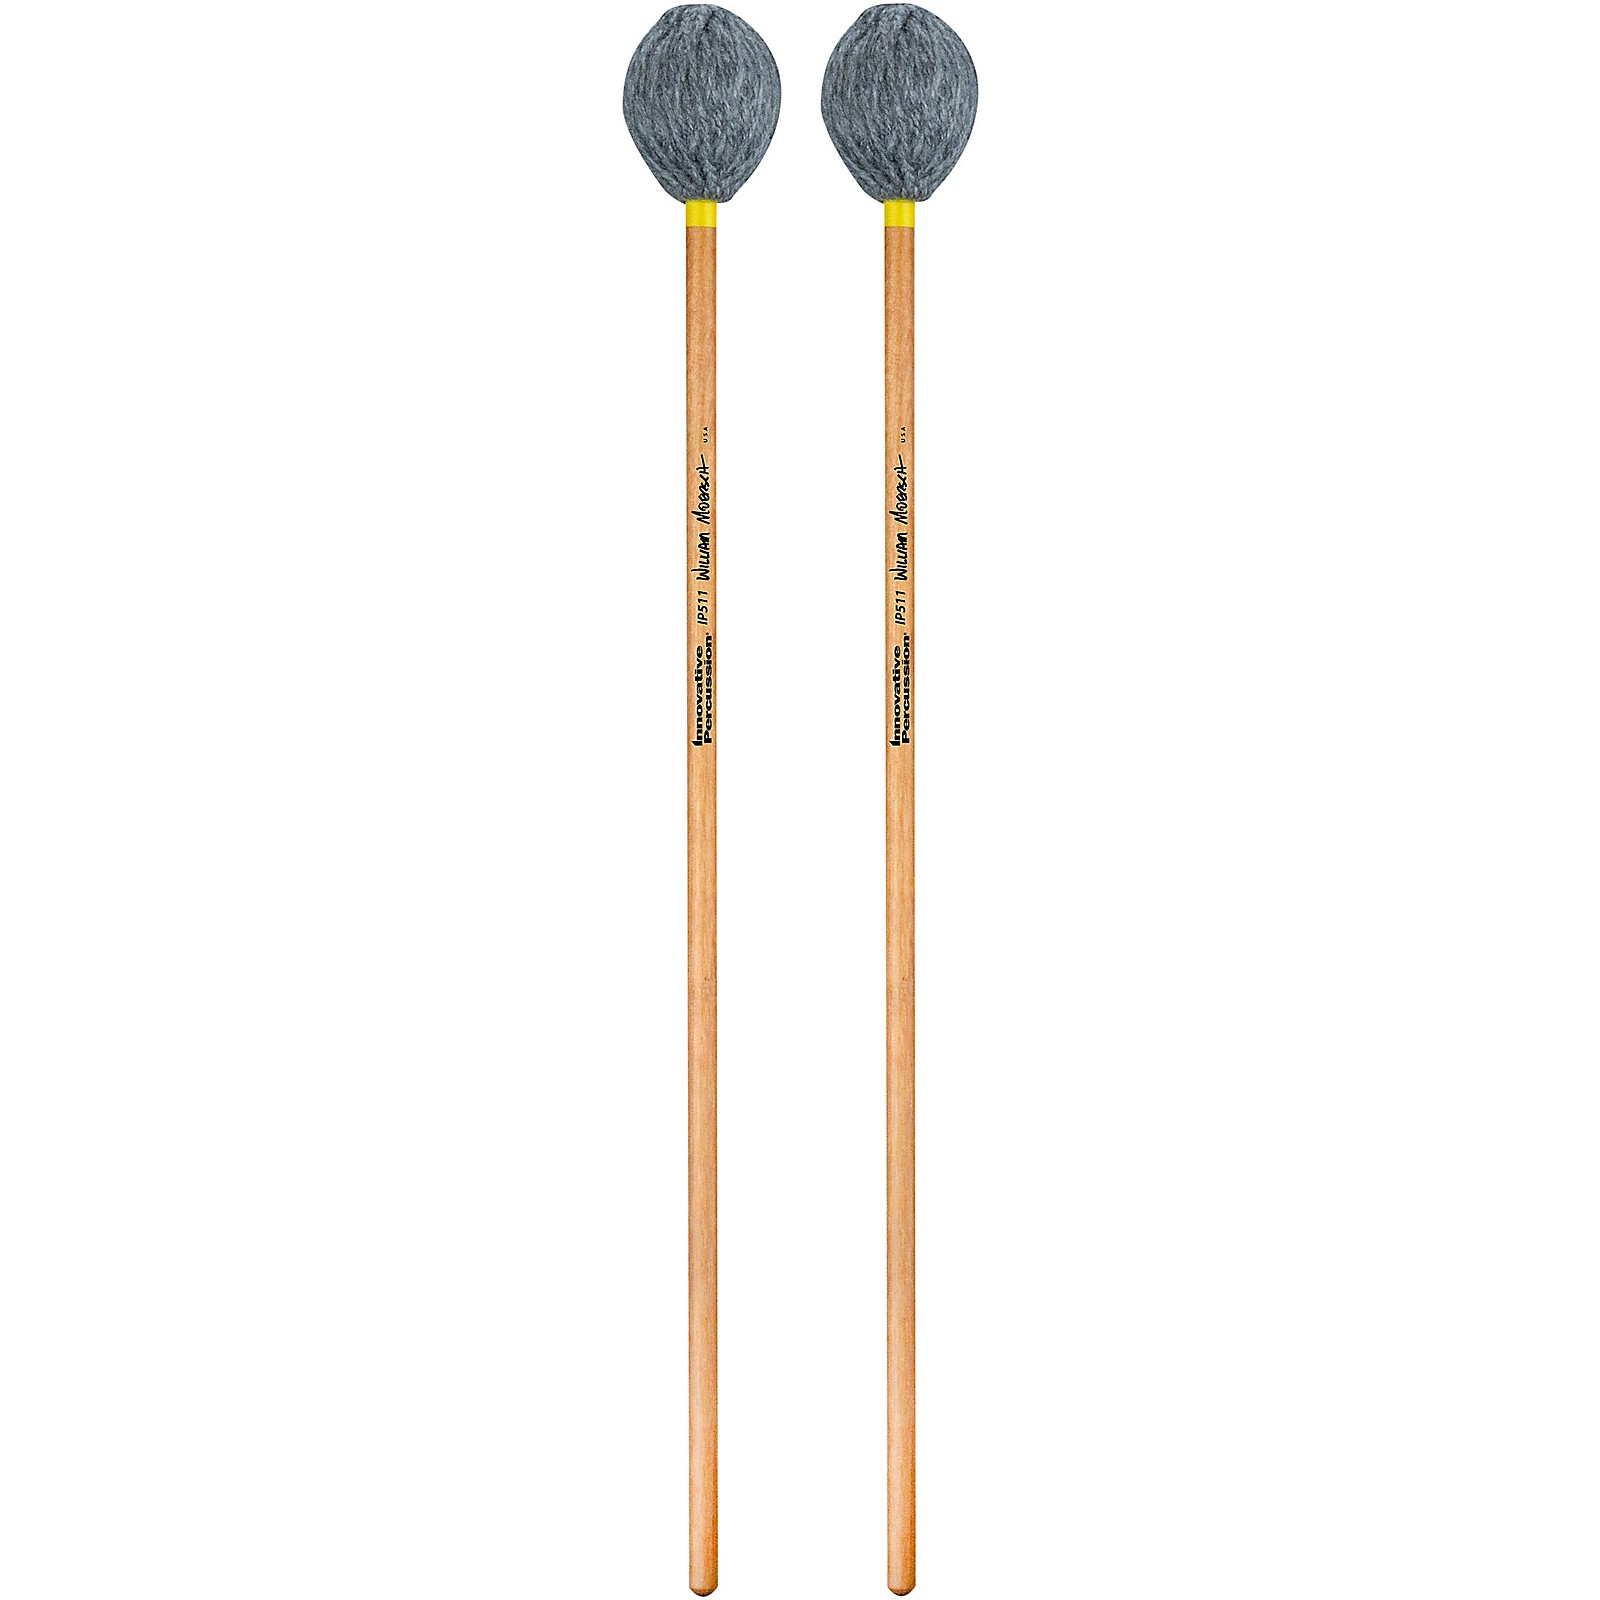 Innovative Percussion William Moersch Series Birch Handle Marimba Mallets